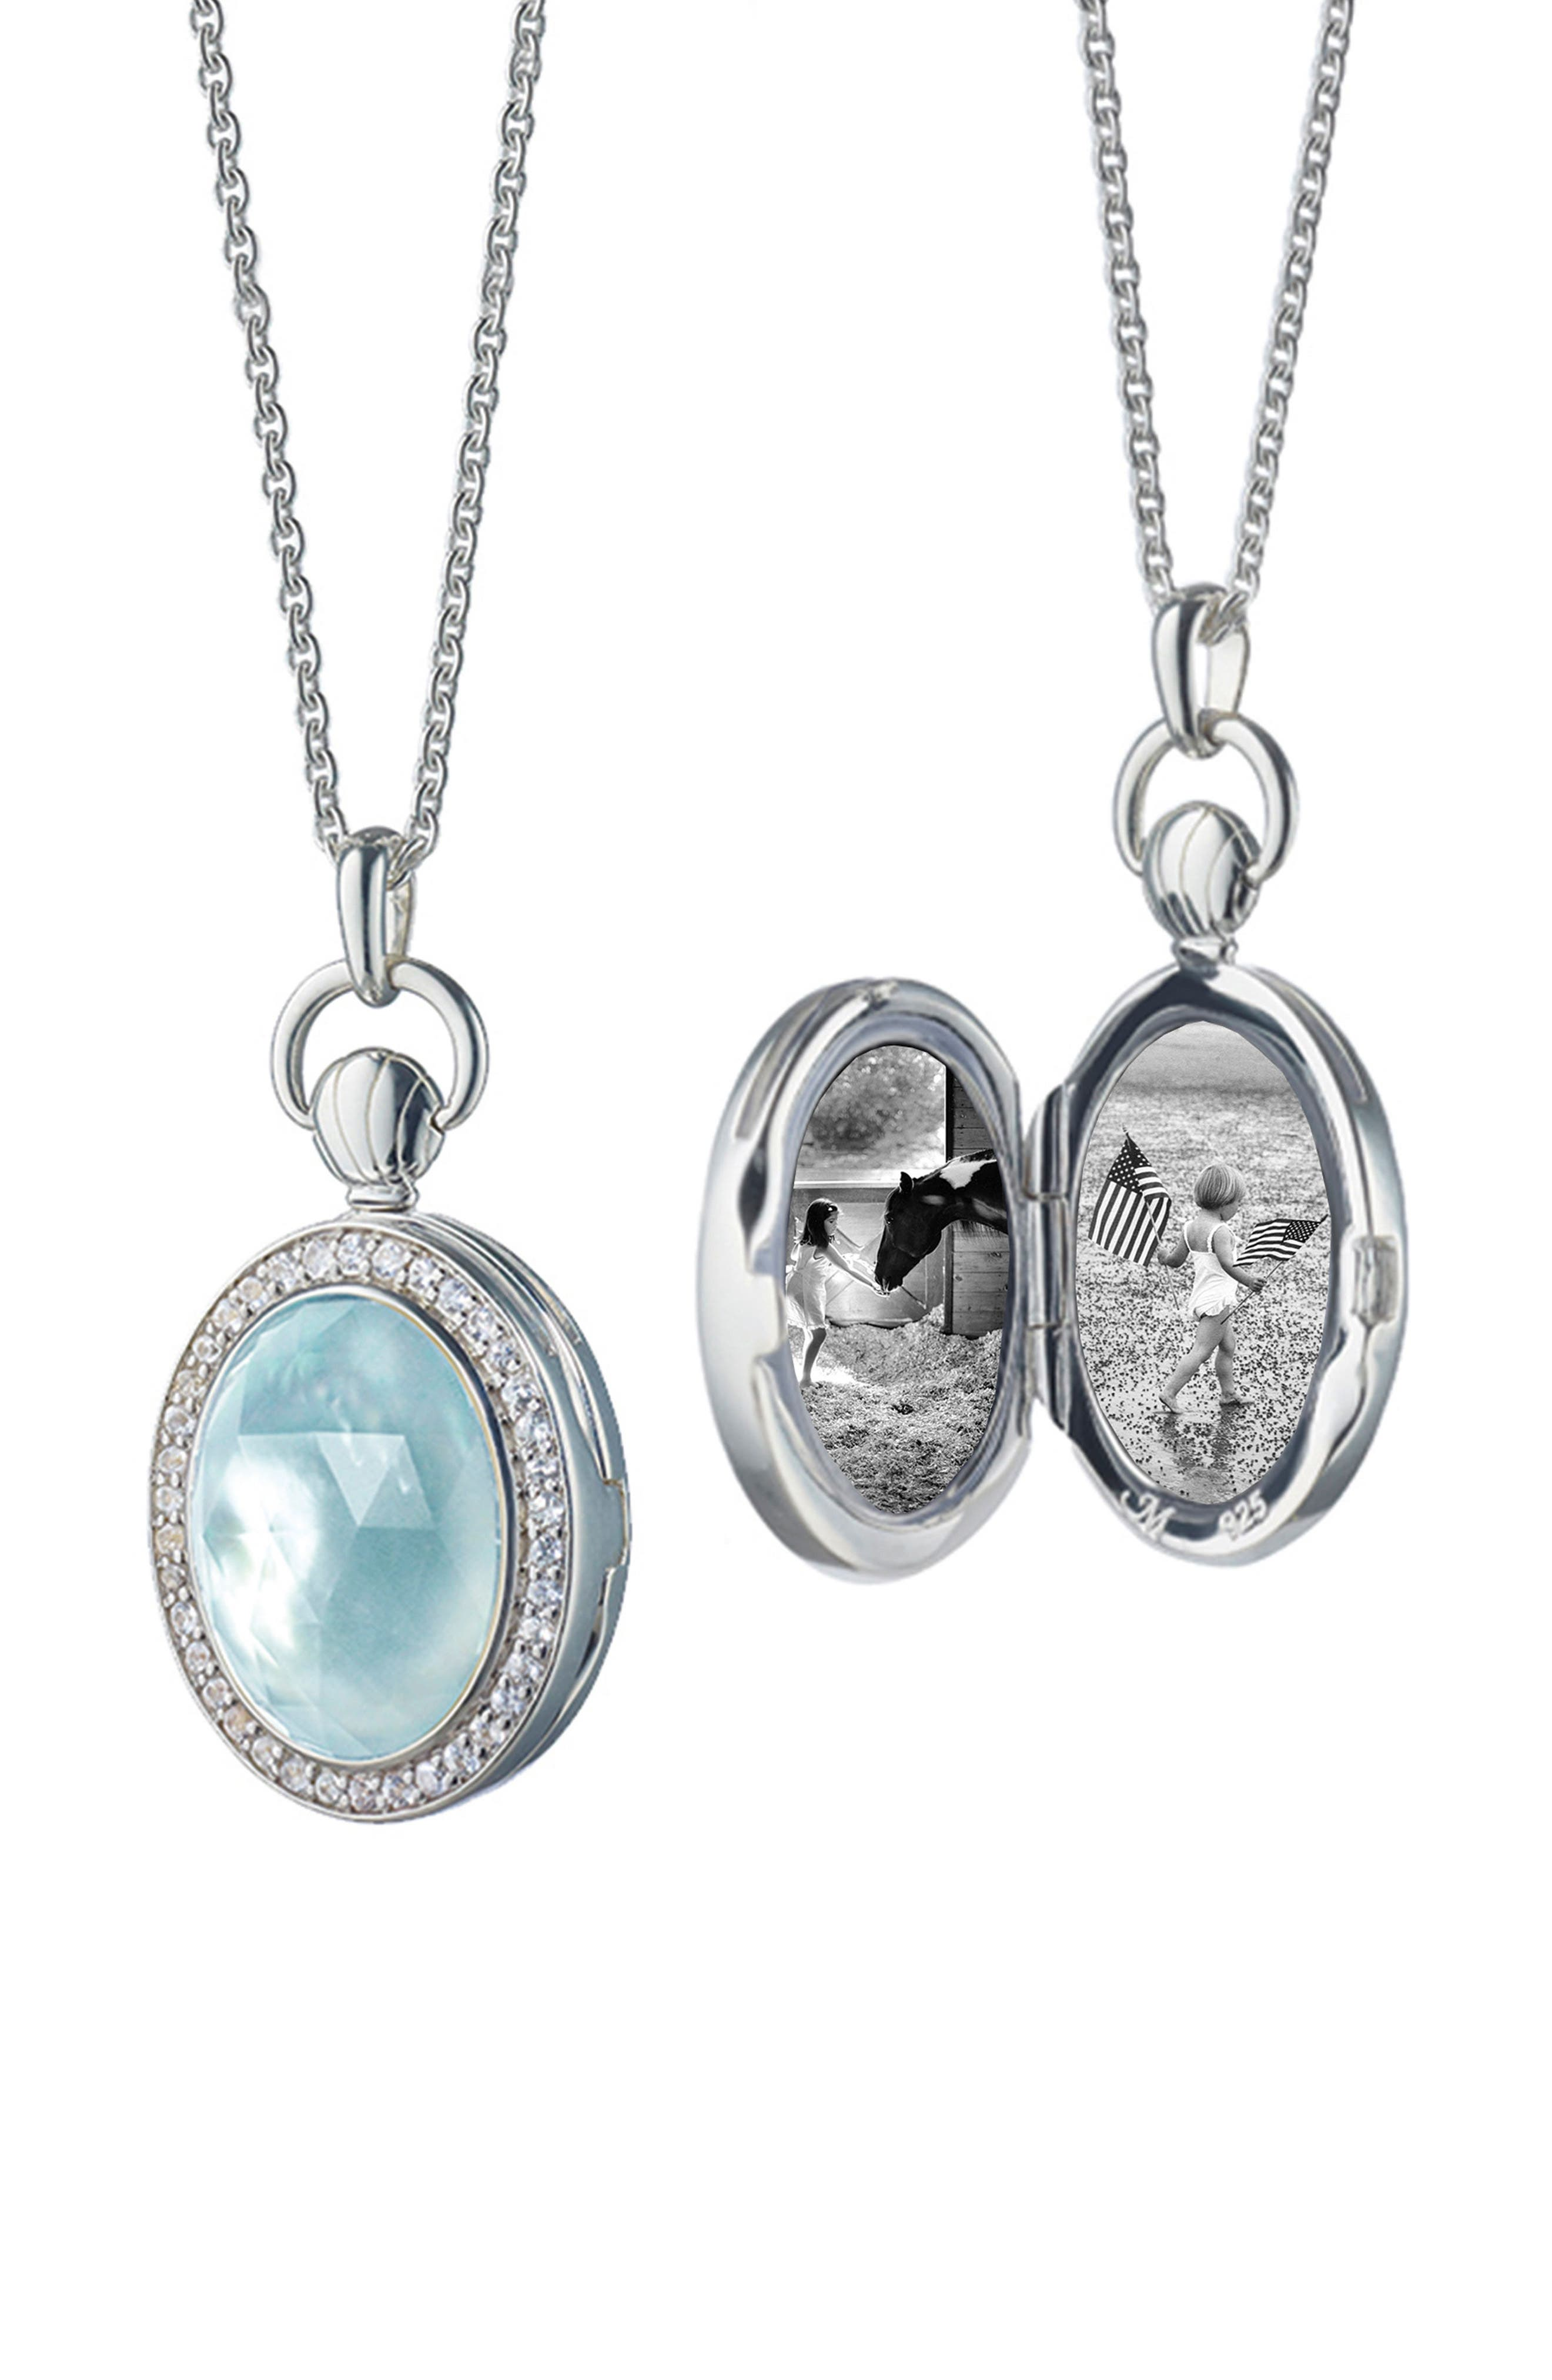 Oval Blue Topaz Petite Locket Necklace,                         Main,                         color, STERLING SILVER